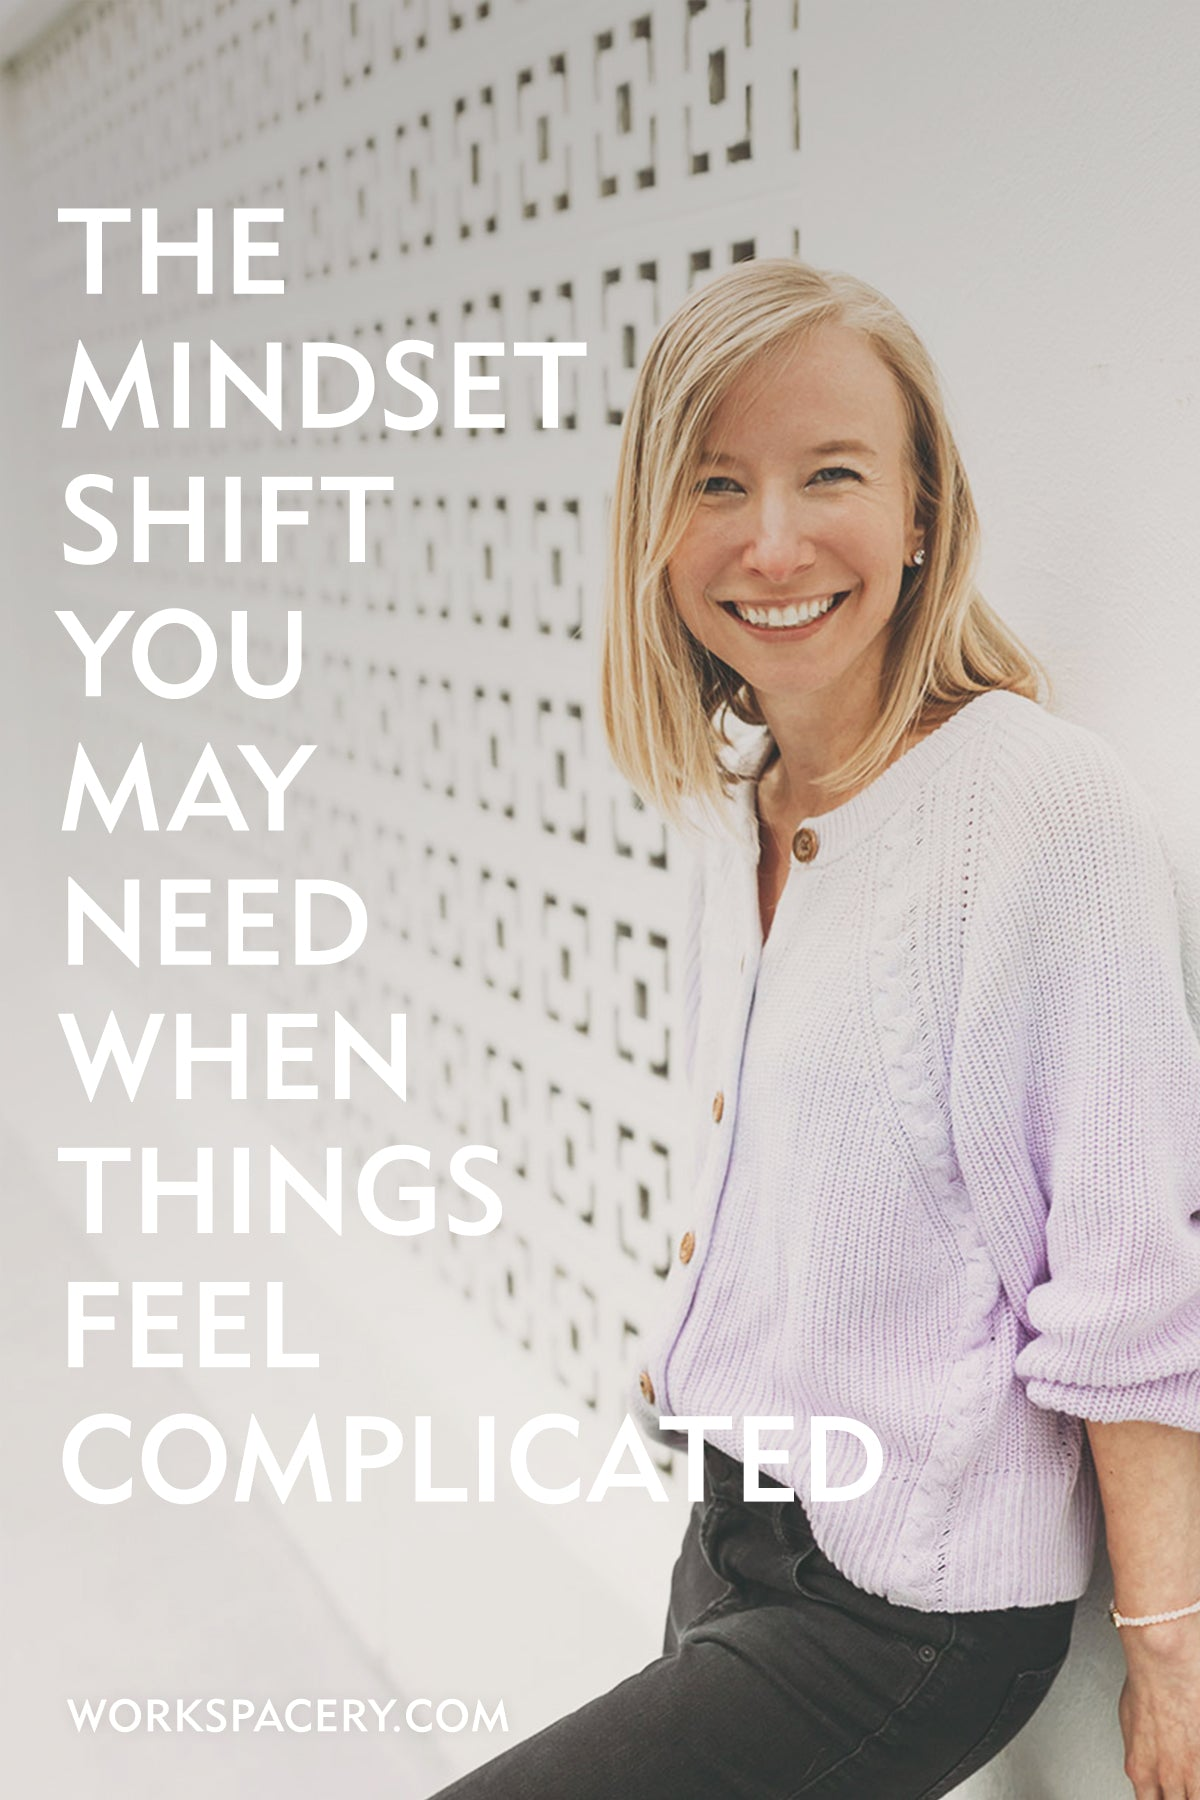 The Mindset Shift You Made Need When Things Feel Complicated